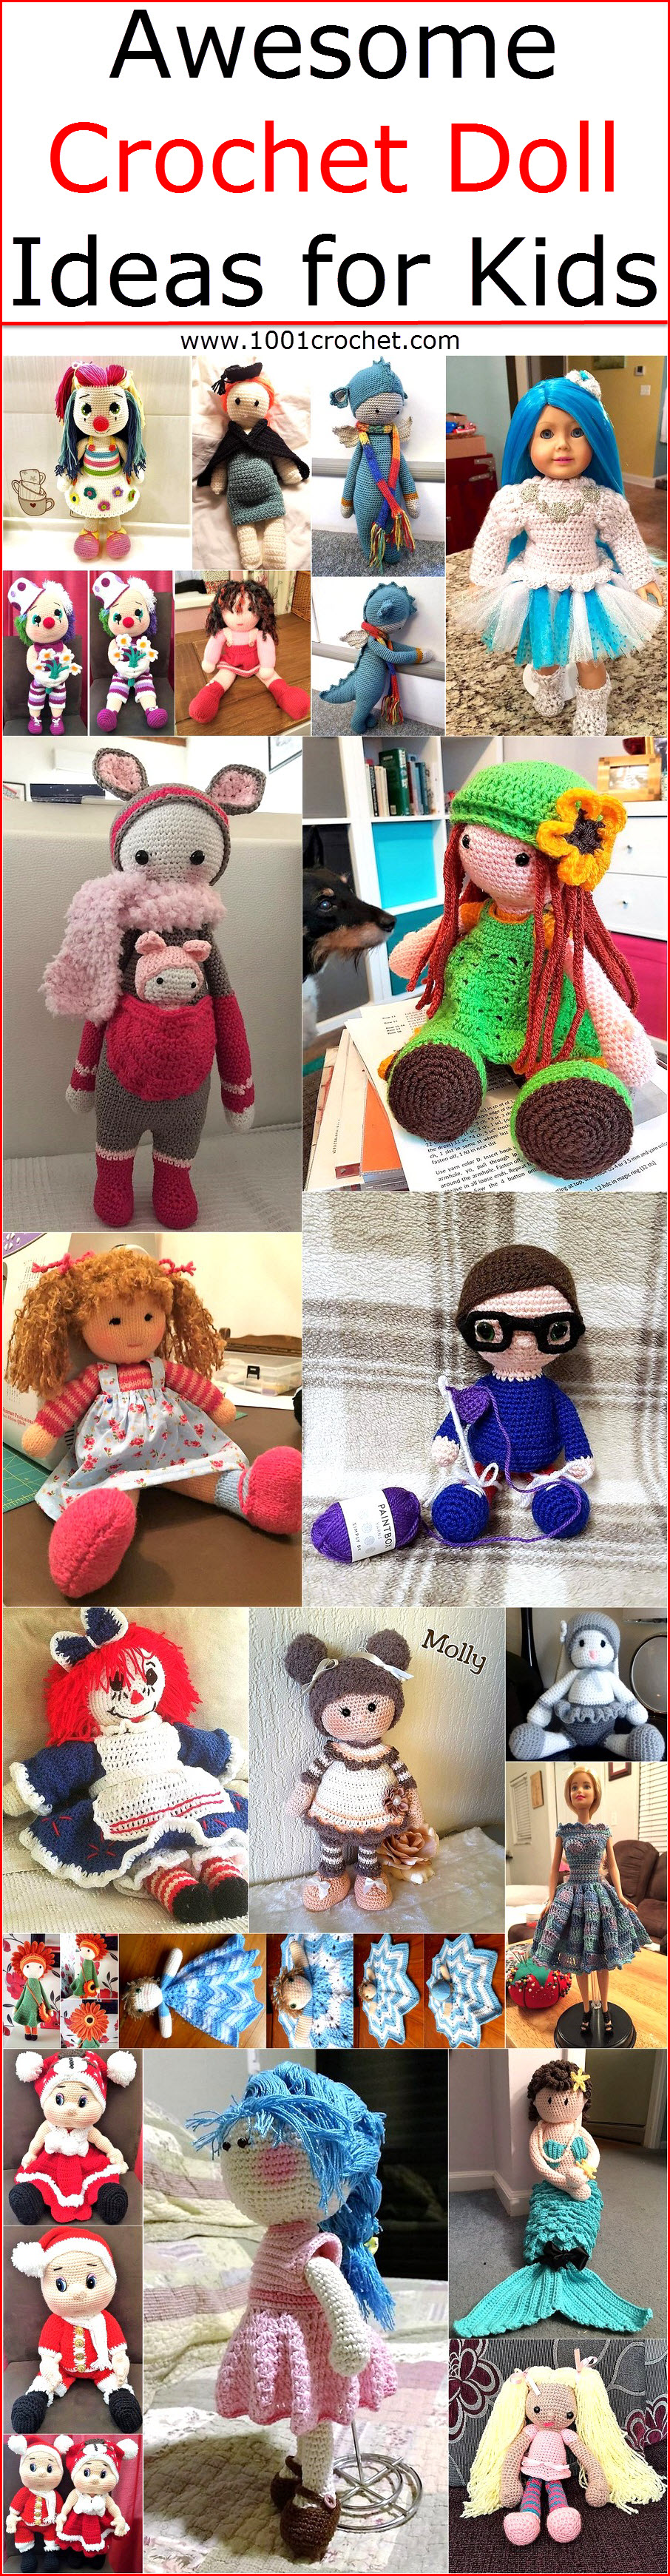 awesome-crochet-doll-ideas-for-kids